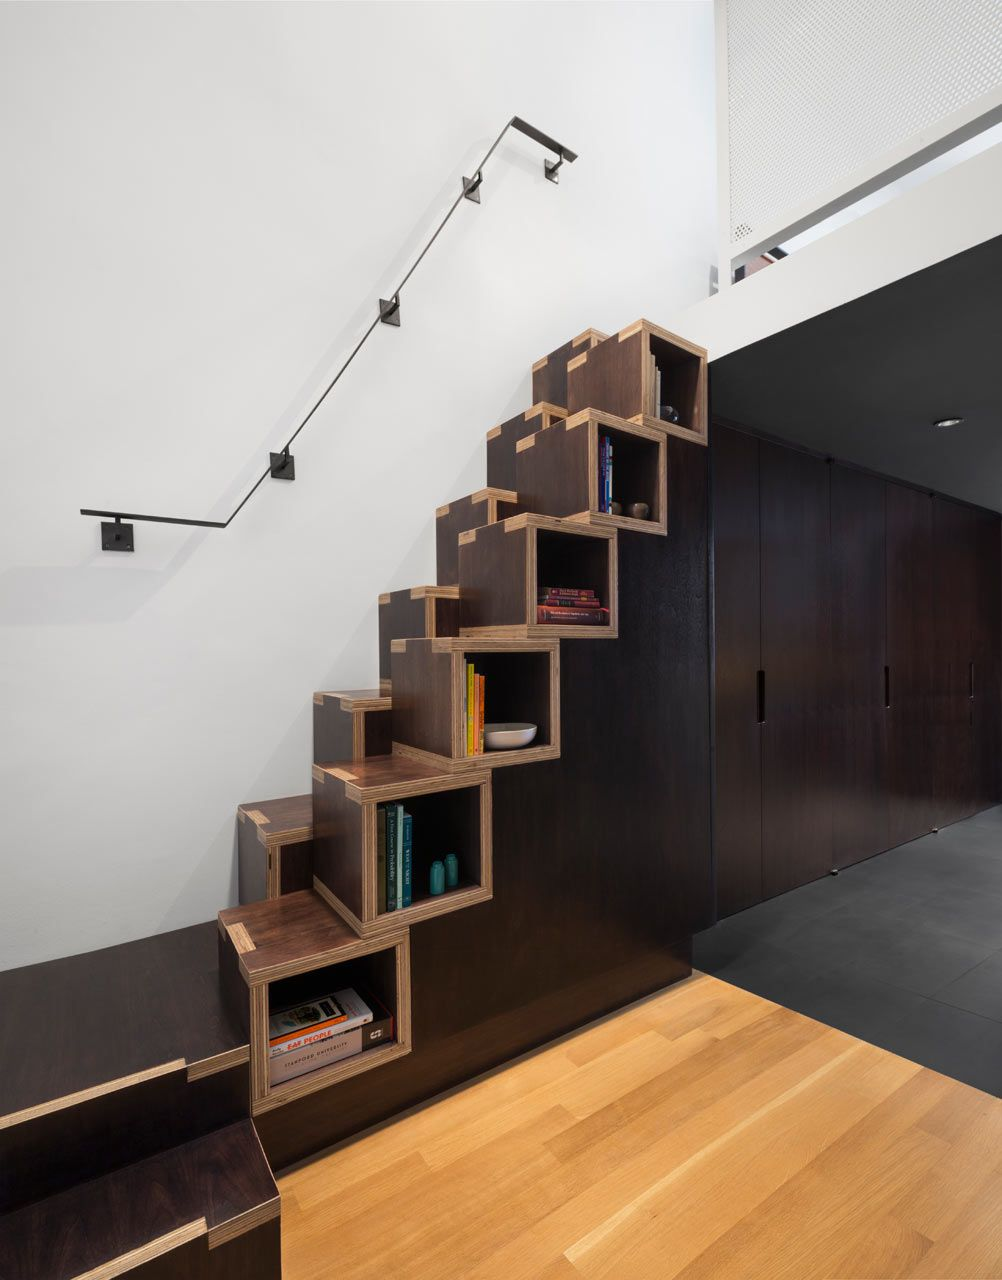 Loft Treppe A Nyc Loft With A Ship Ladder Staircase Home Decor Loft